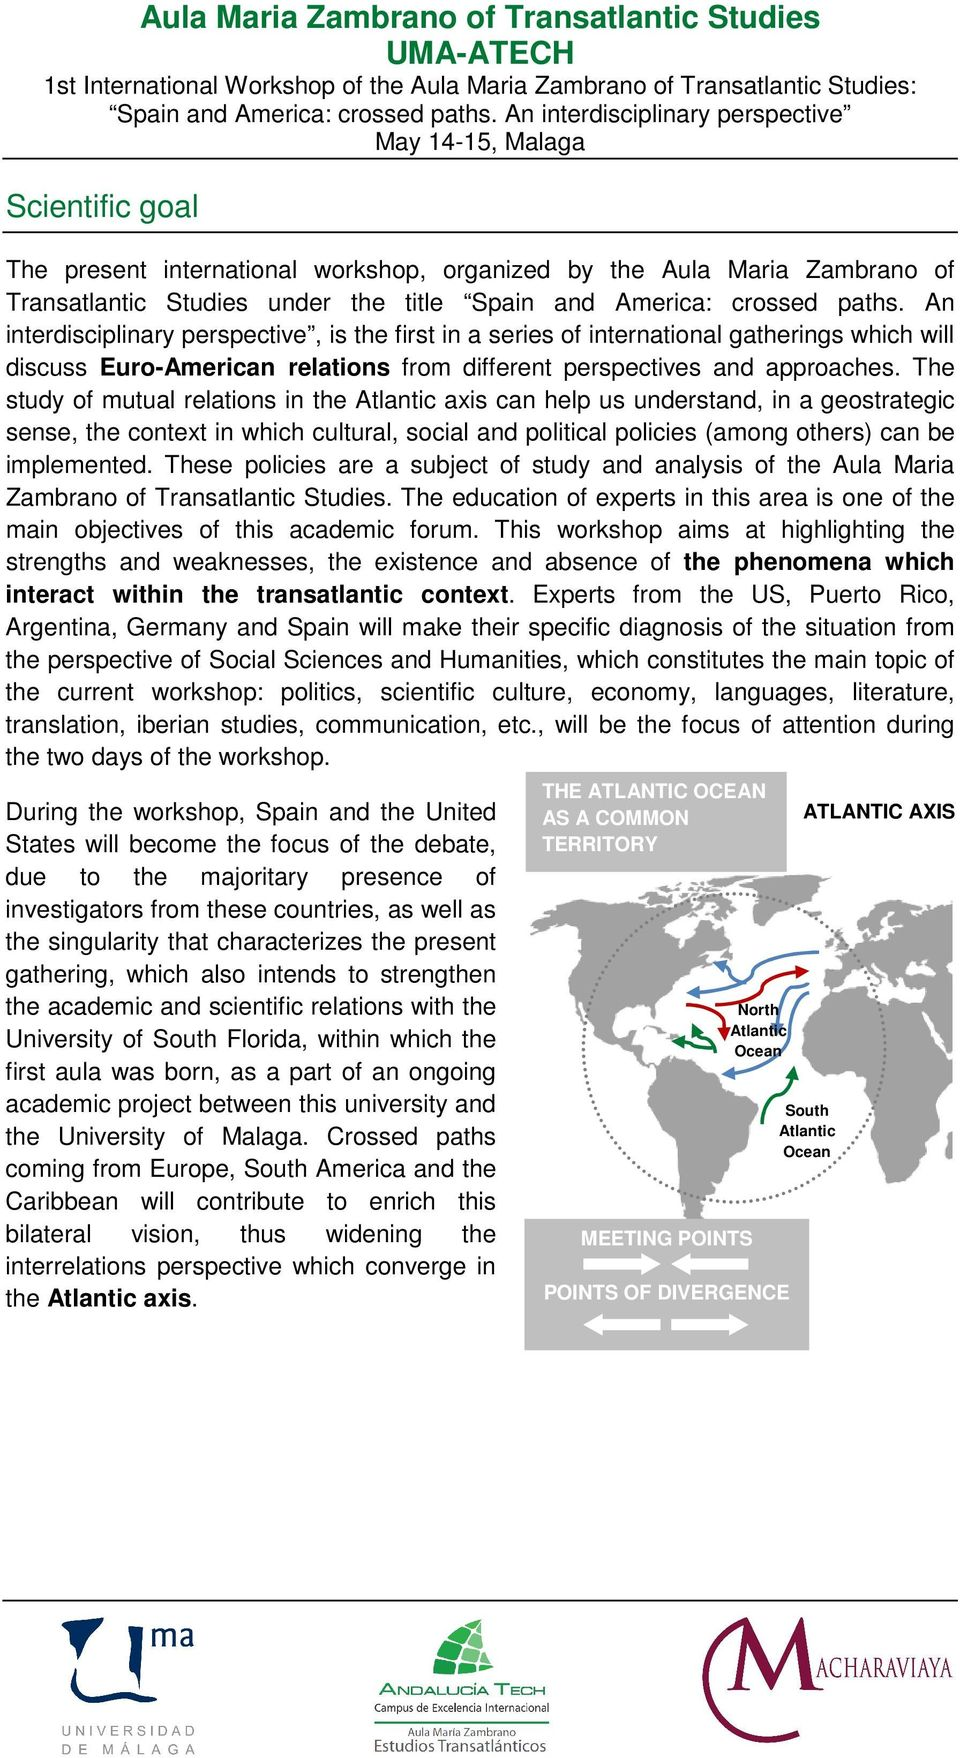 The study of mutual relations in the Atlantic axis can help us understand, in a geostrategic sense, the context in which cultural, social and political policies (among others) can be implemented.